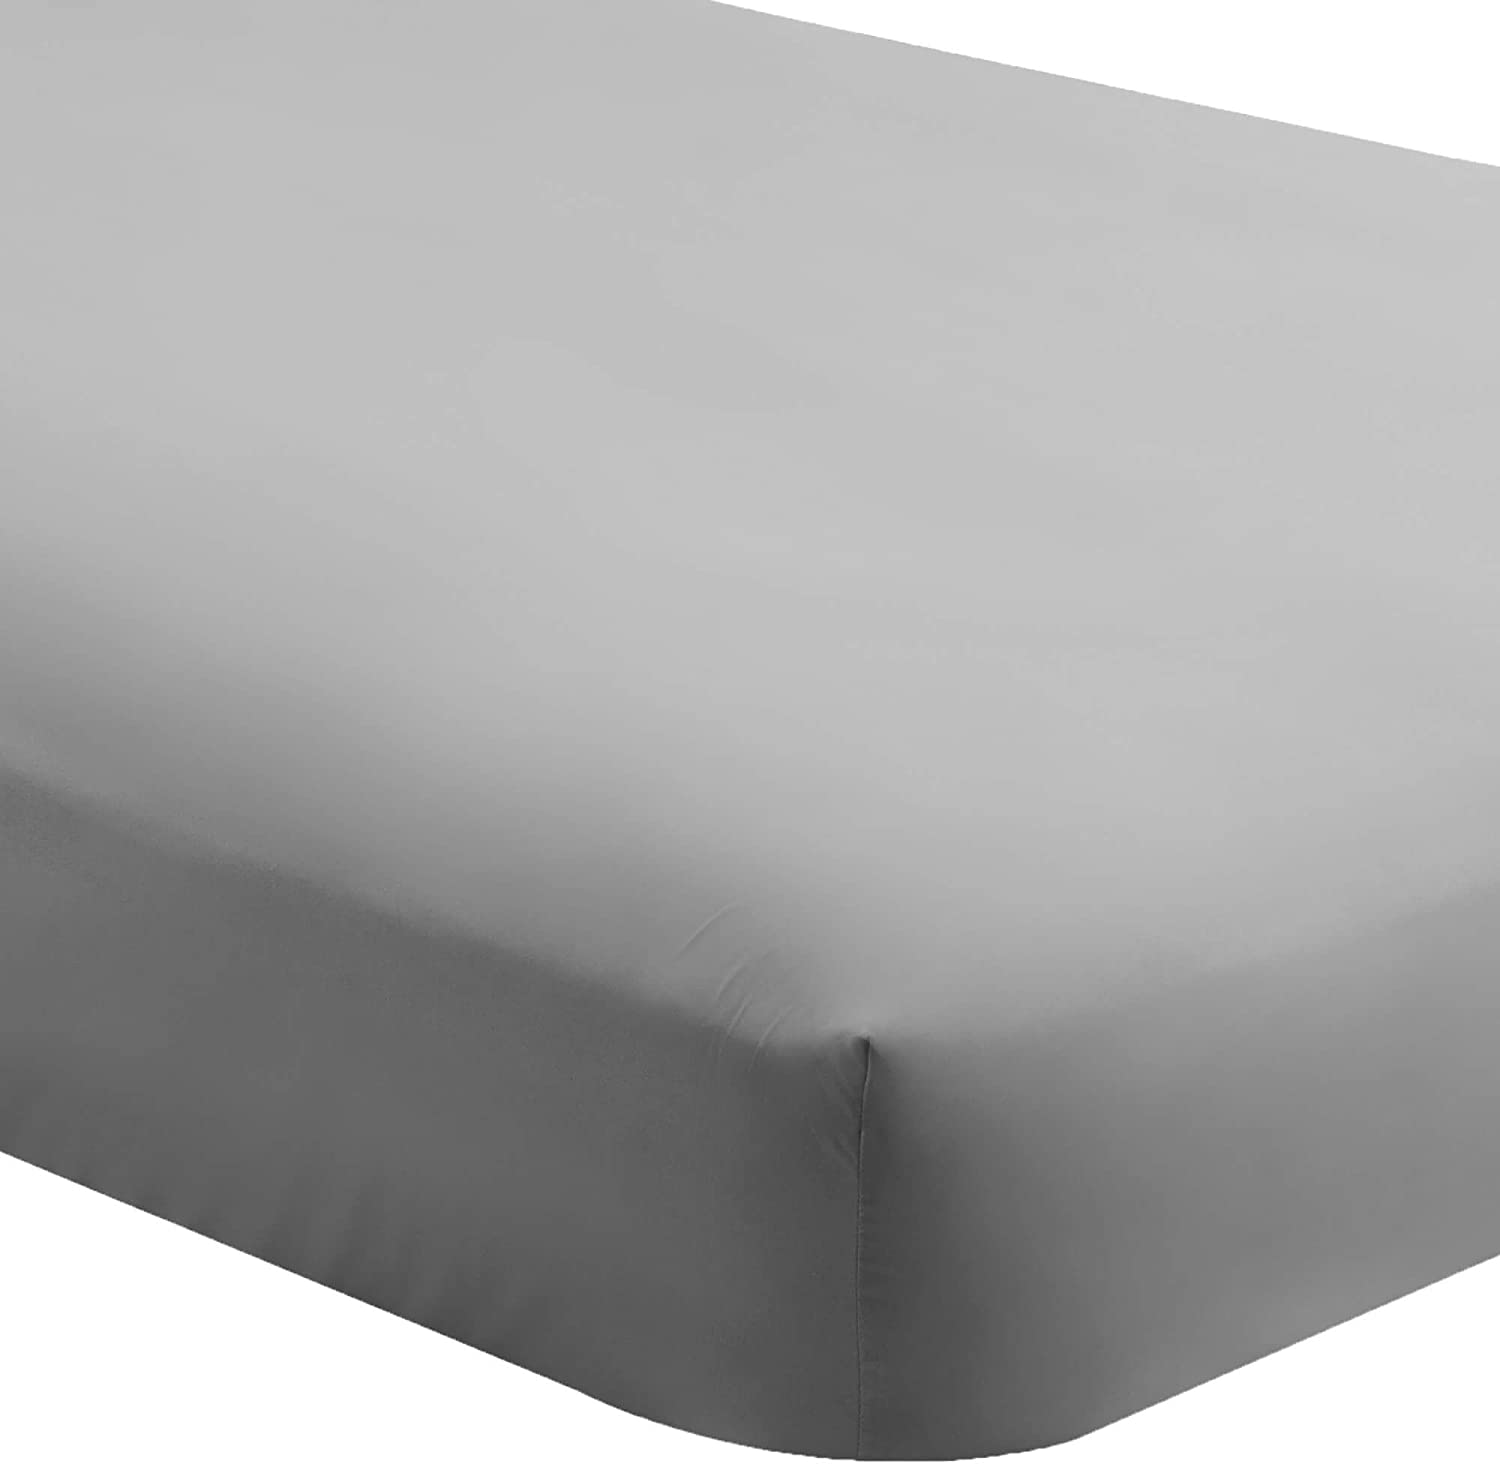 Bare Home Fitted Bottom Sheet Queen - Premium 1800 Ultra-Soft Wrinkle Resistant Microfiber - Hypoallergenic - Deep Pocket (Queen, Light Grey)